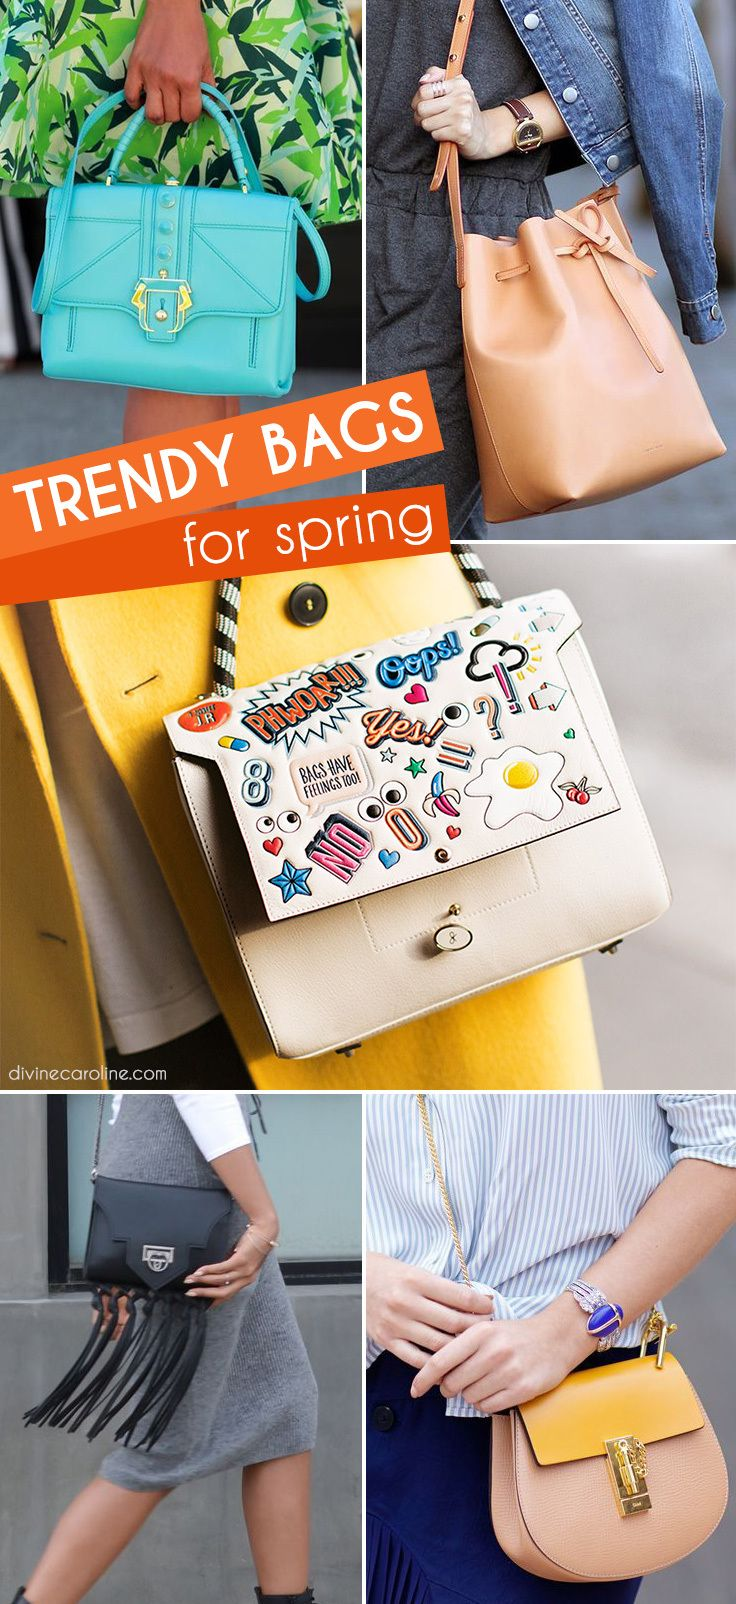 Here are this season's 24 must-have handbags every girl needs. #Handbags #SpringStyle